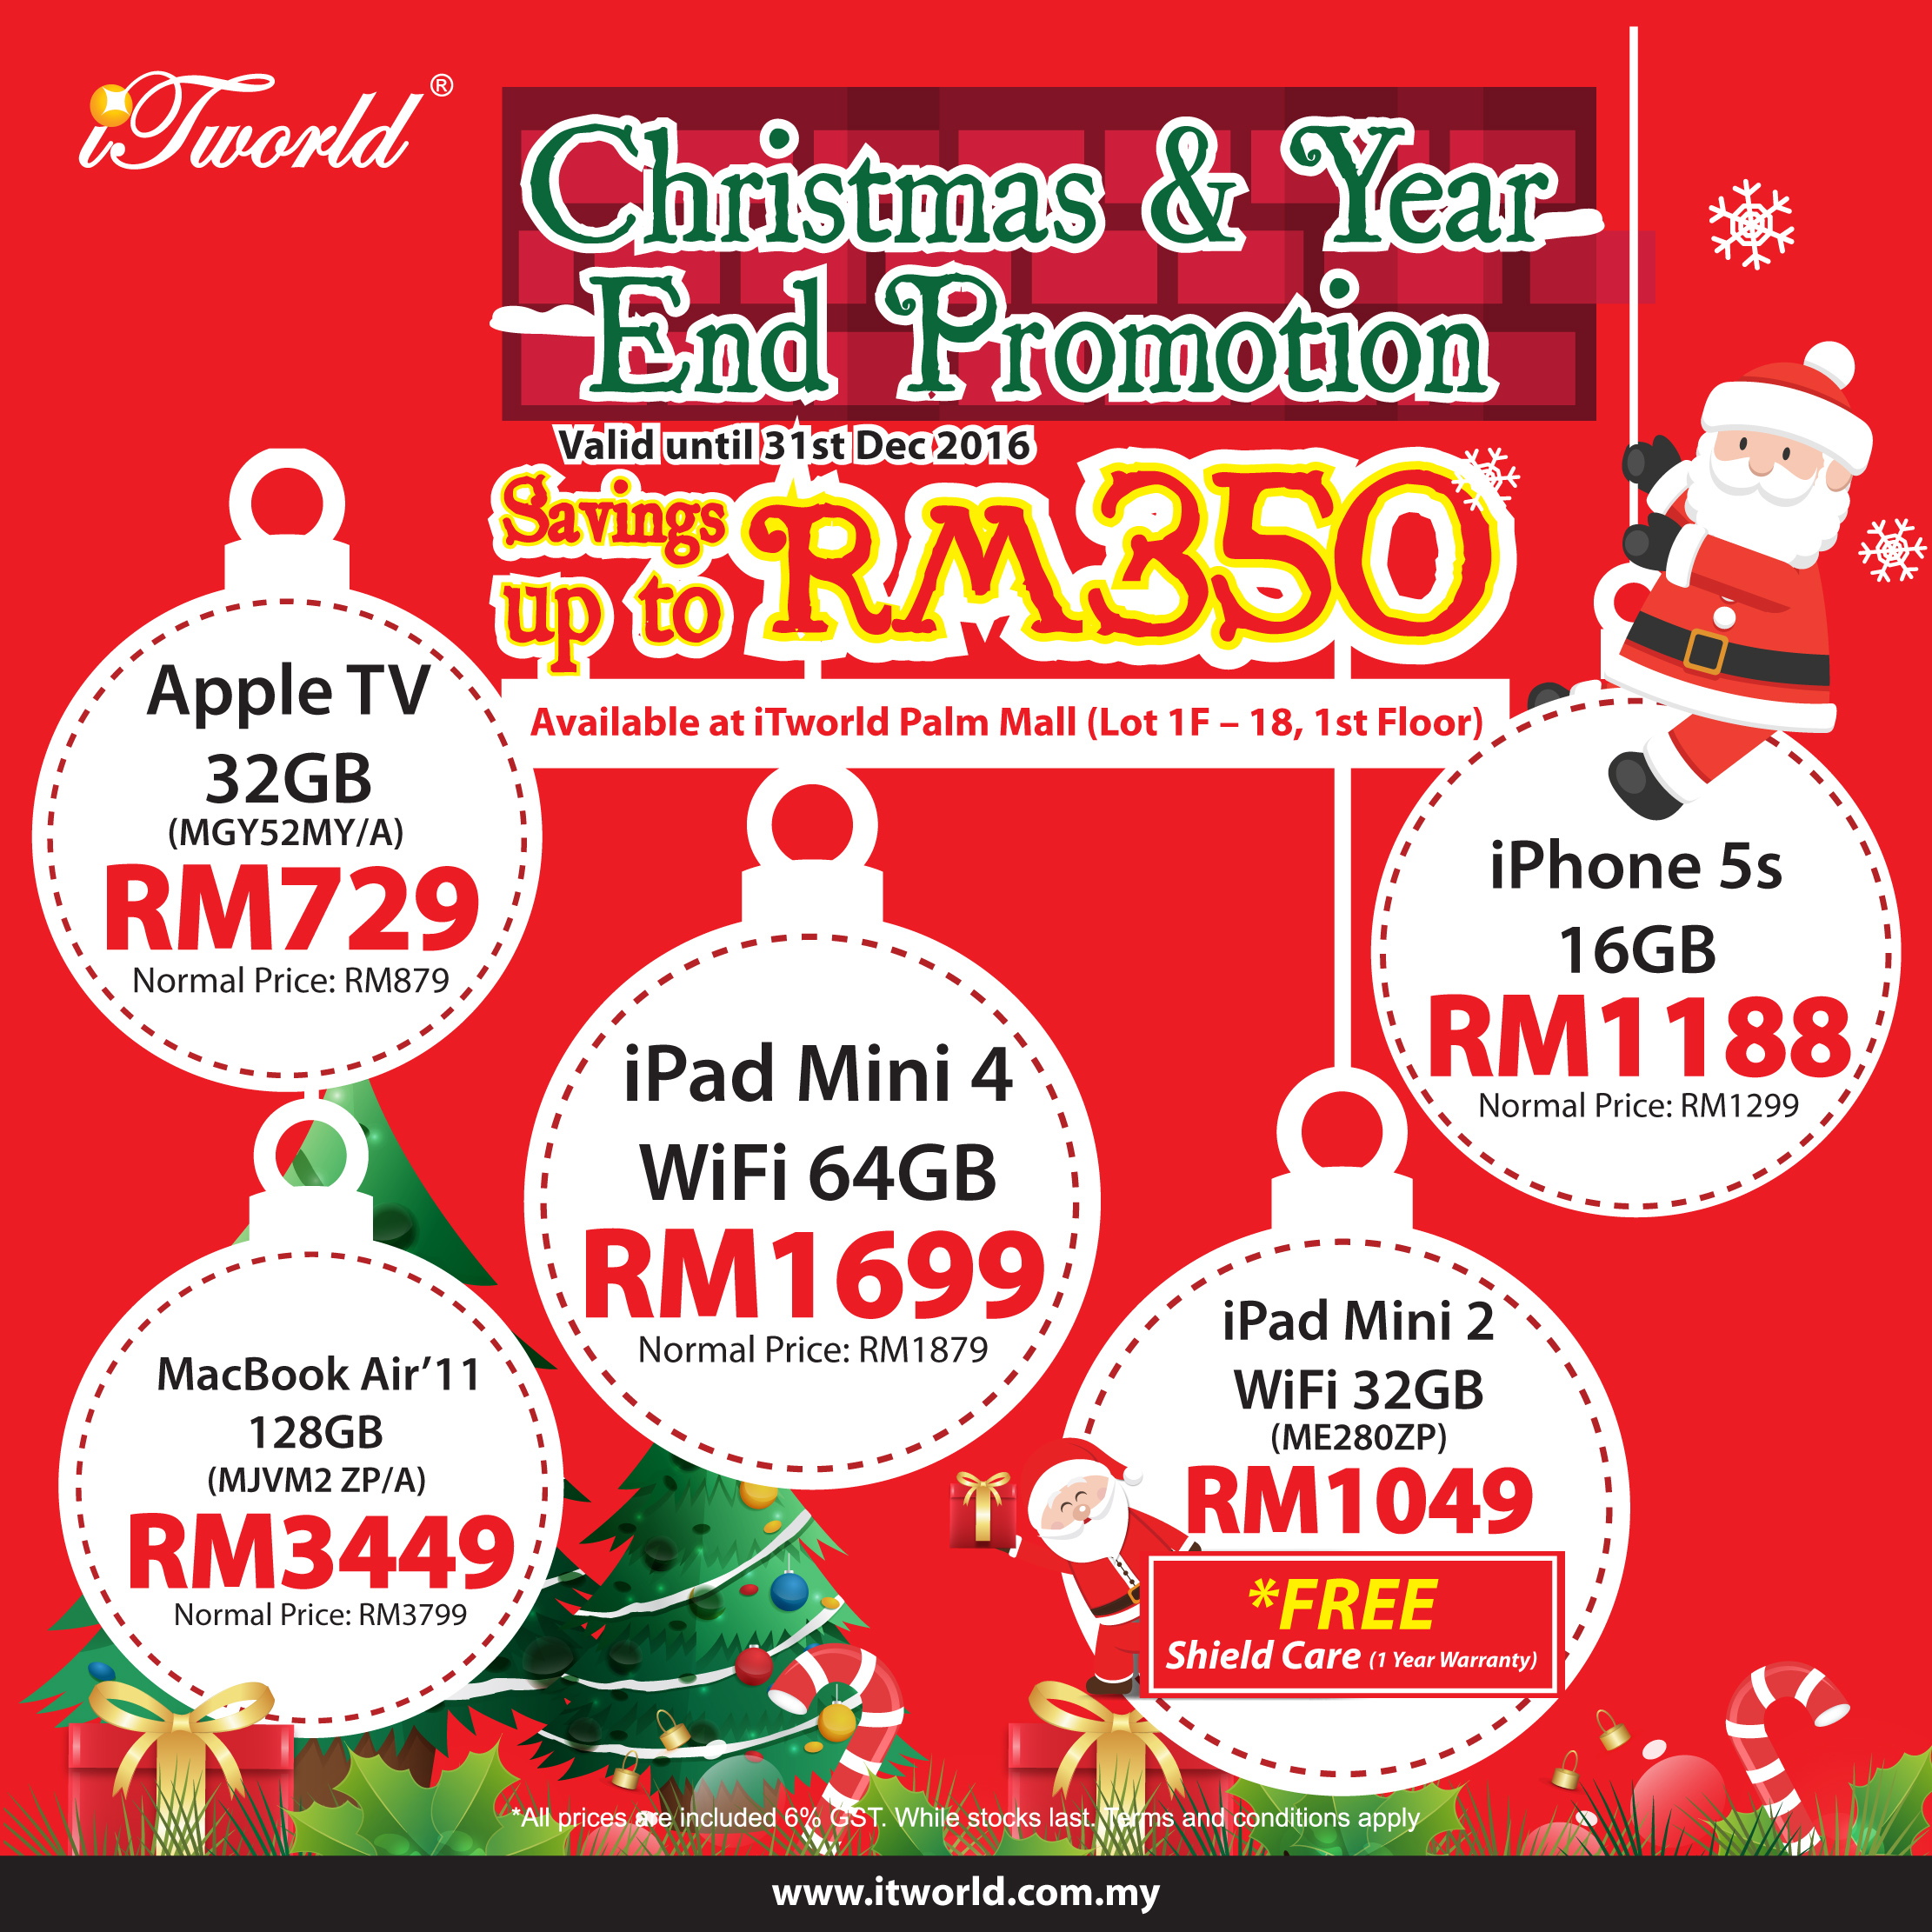 Christmas & Year End Promotion